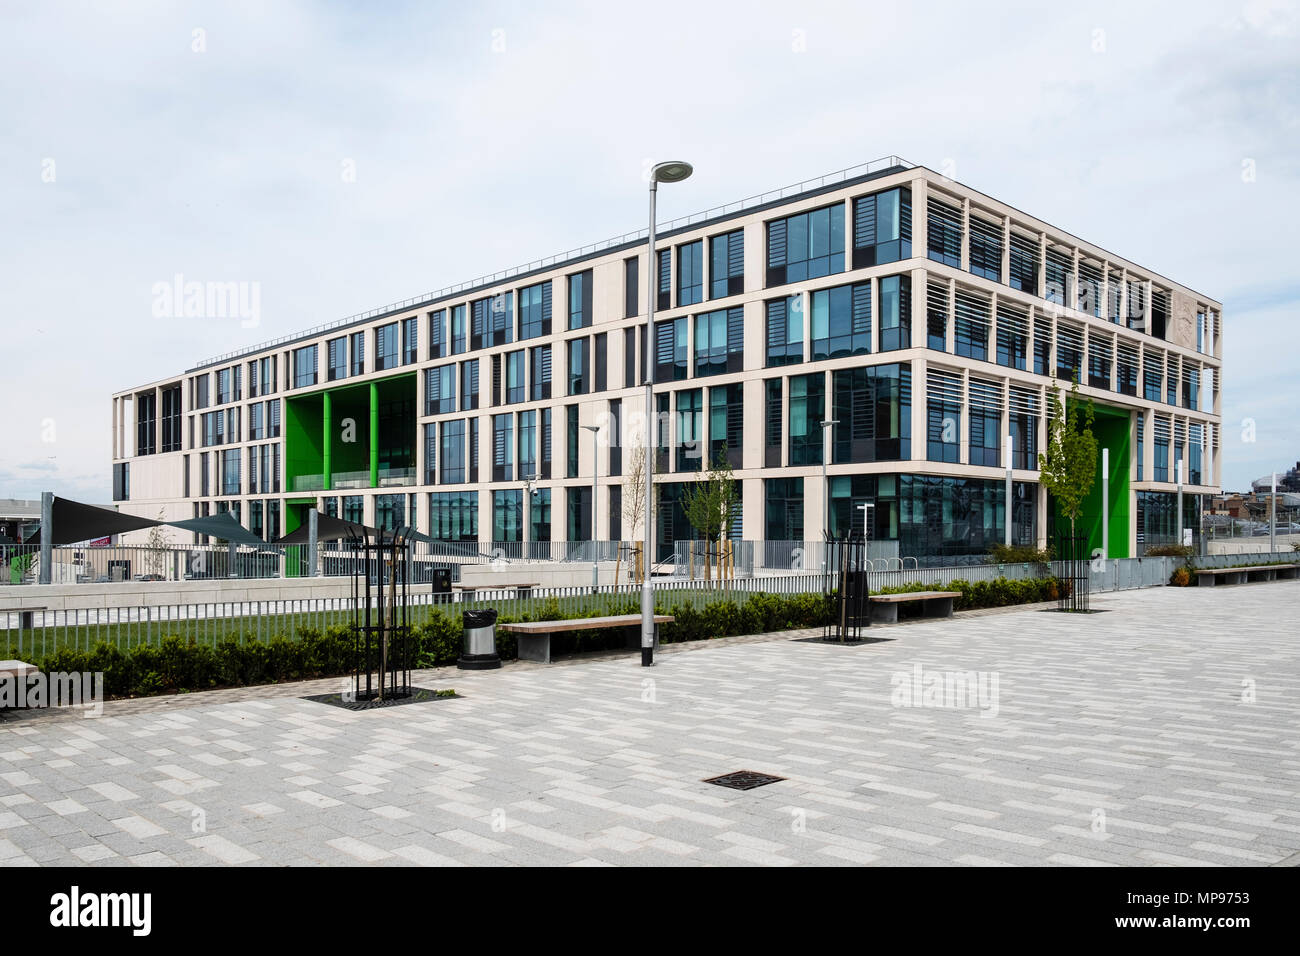 View of new Boroughmuir High School recently opened in Edinburgh, Scotland, UK, United Kingdom - Stock Image